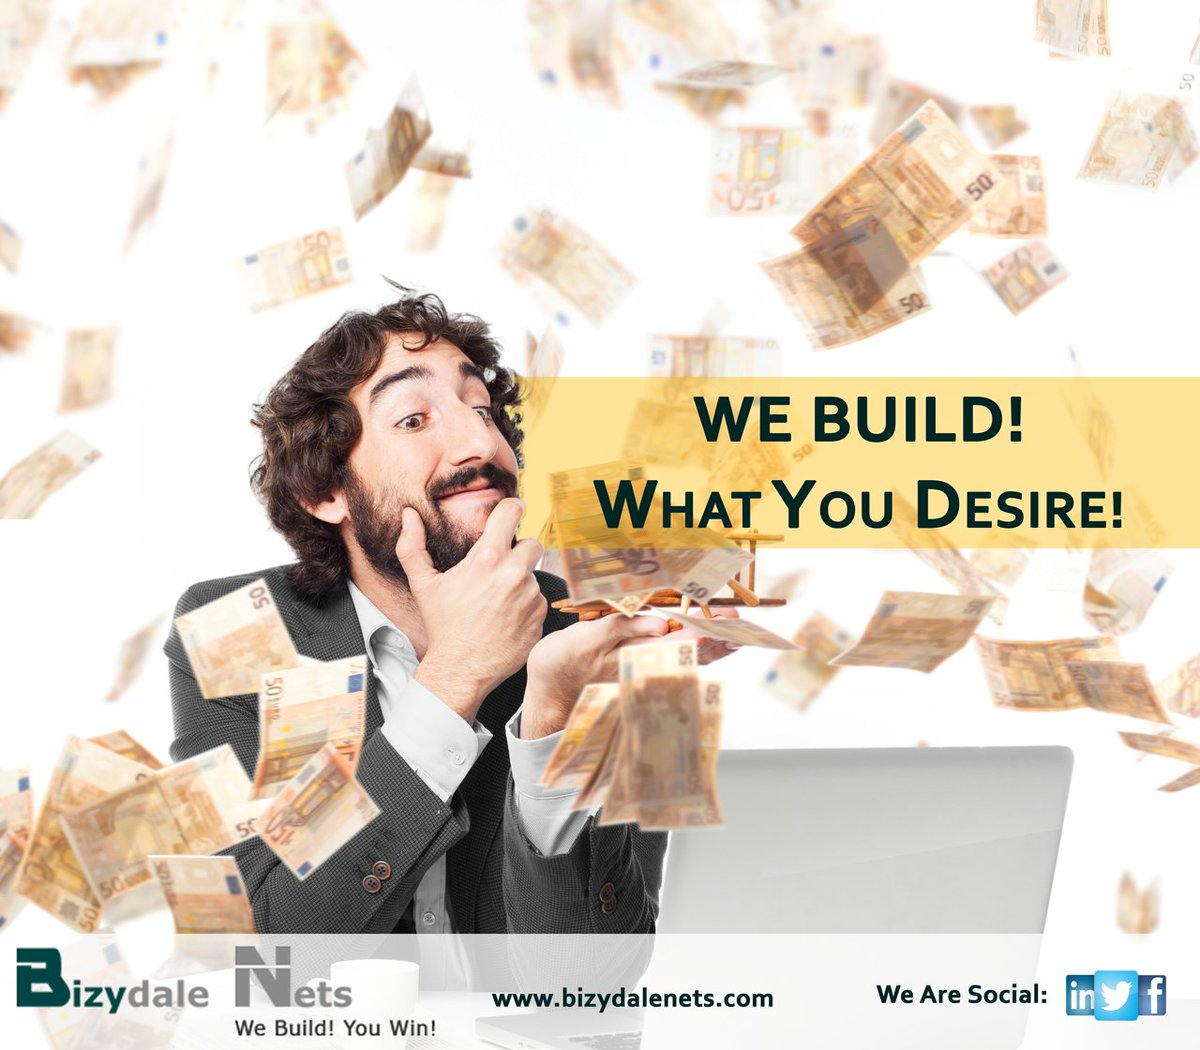 We Build! You Win!  http://www. bizydalenets.com  &nbsp;      #Solutions #business #success #startup #marketing #mobileappdevelopment #SEO #SMM<br>http://pic.twitter.com/i5Yb5fyHf7